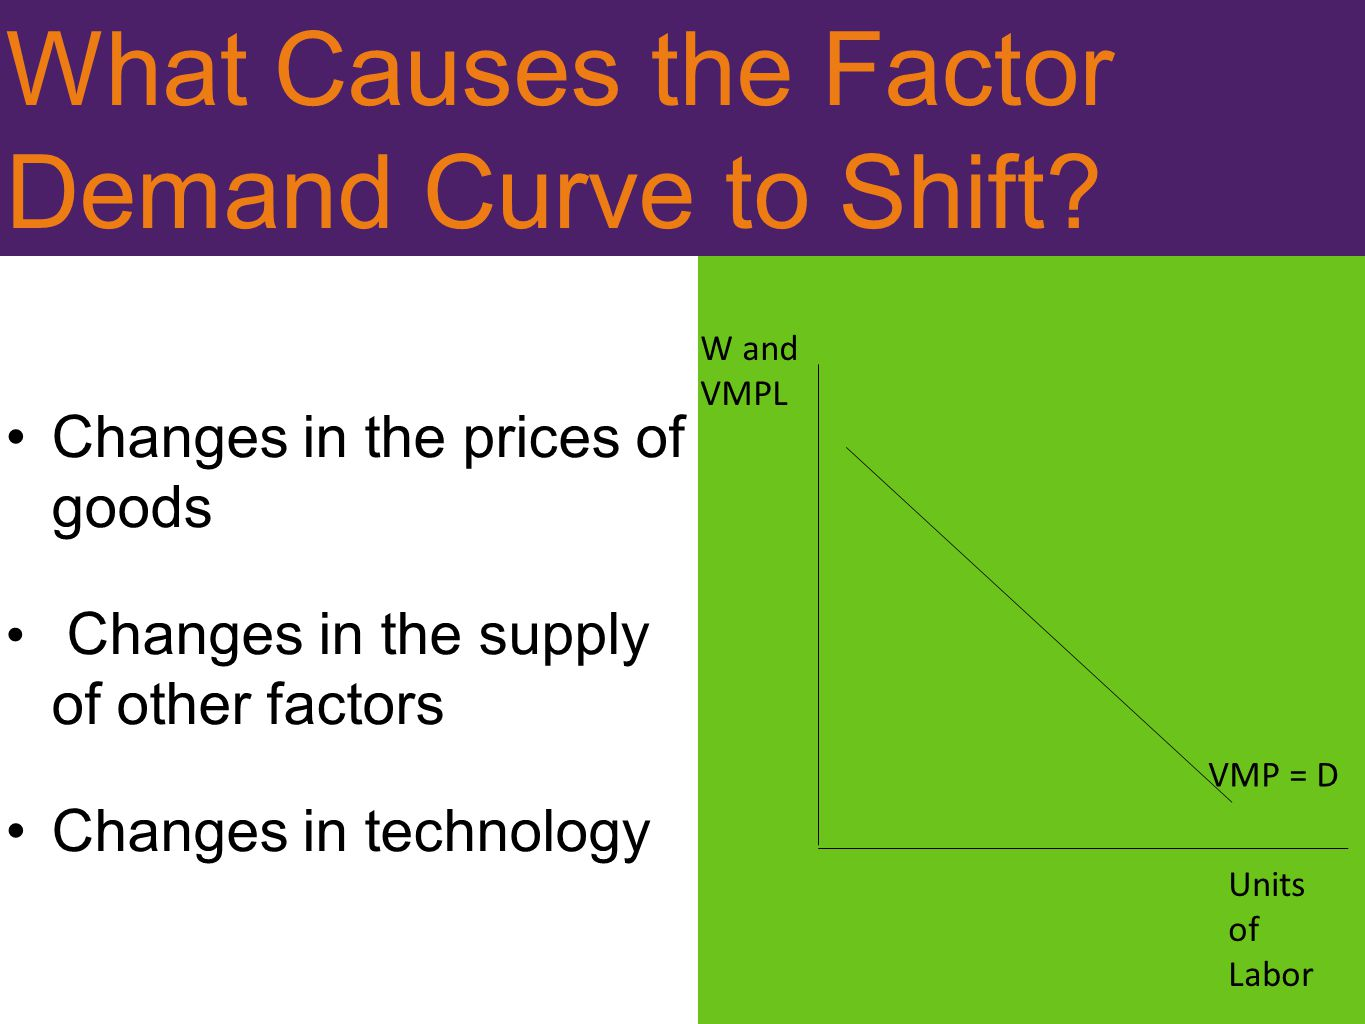 What Causes the Factor Demand Curve to Shift